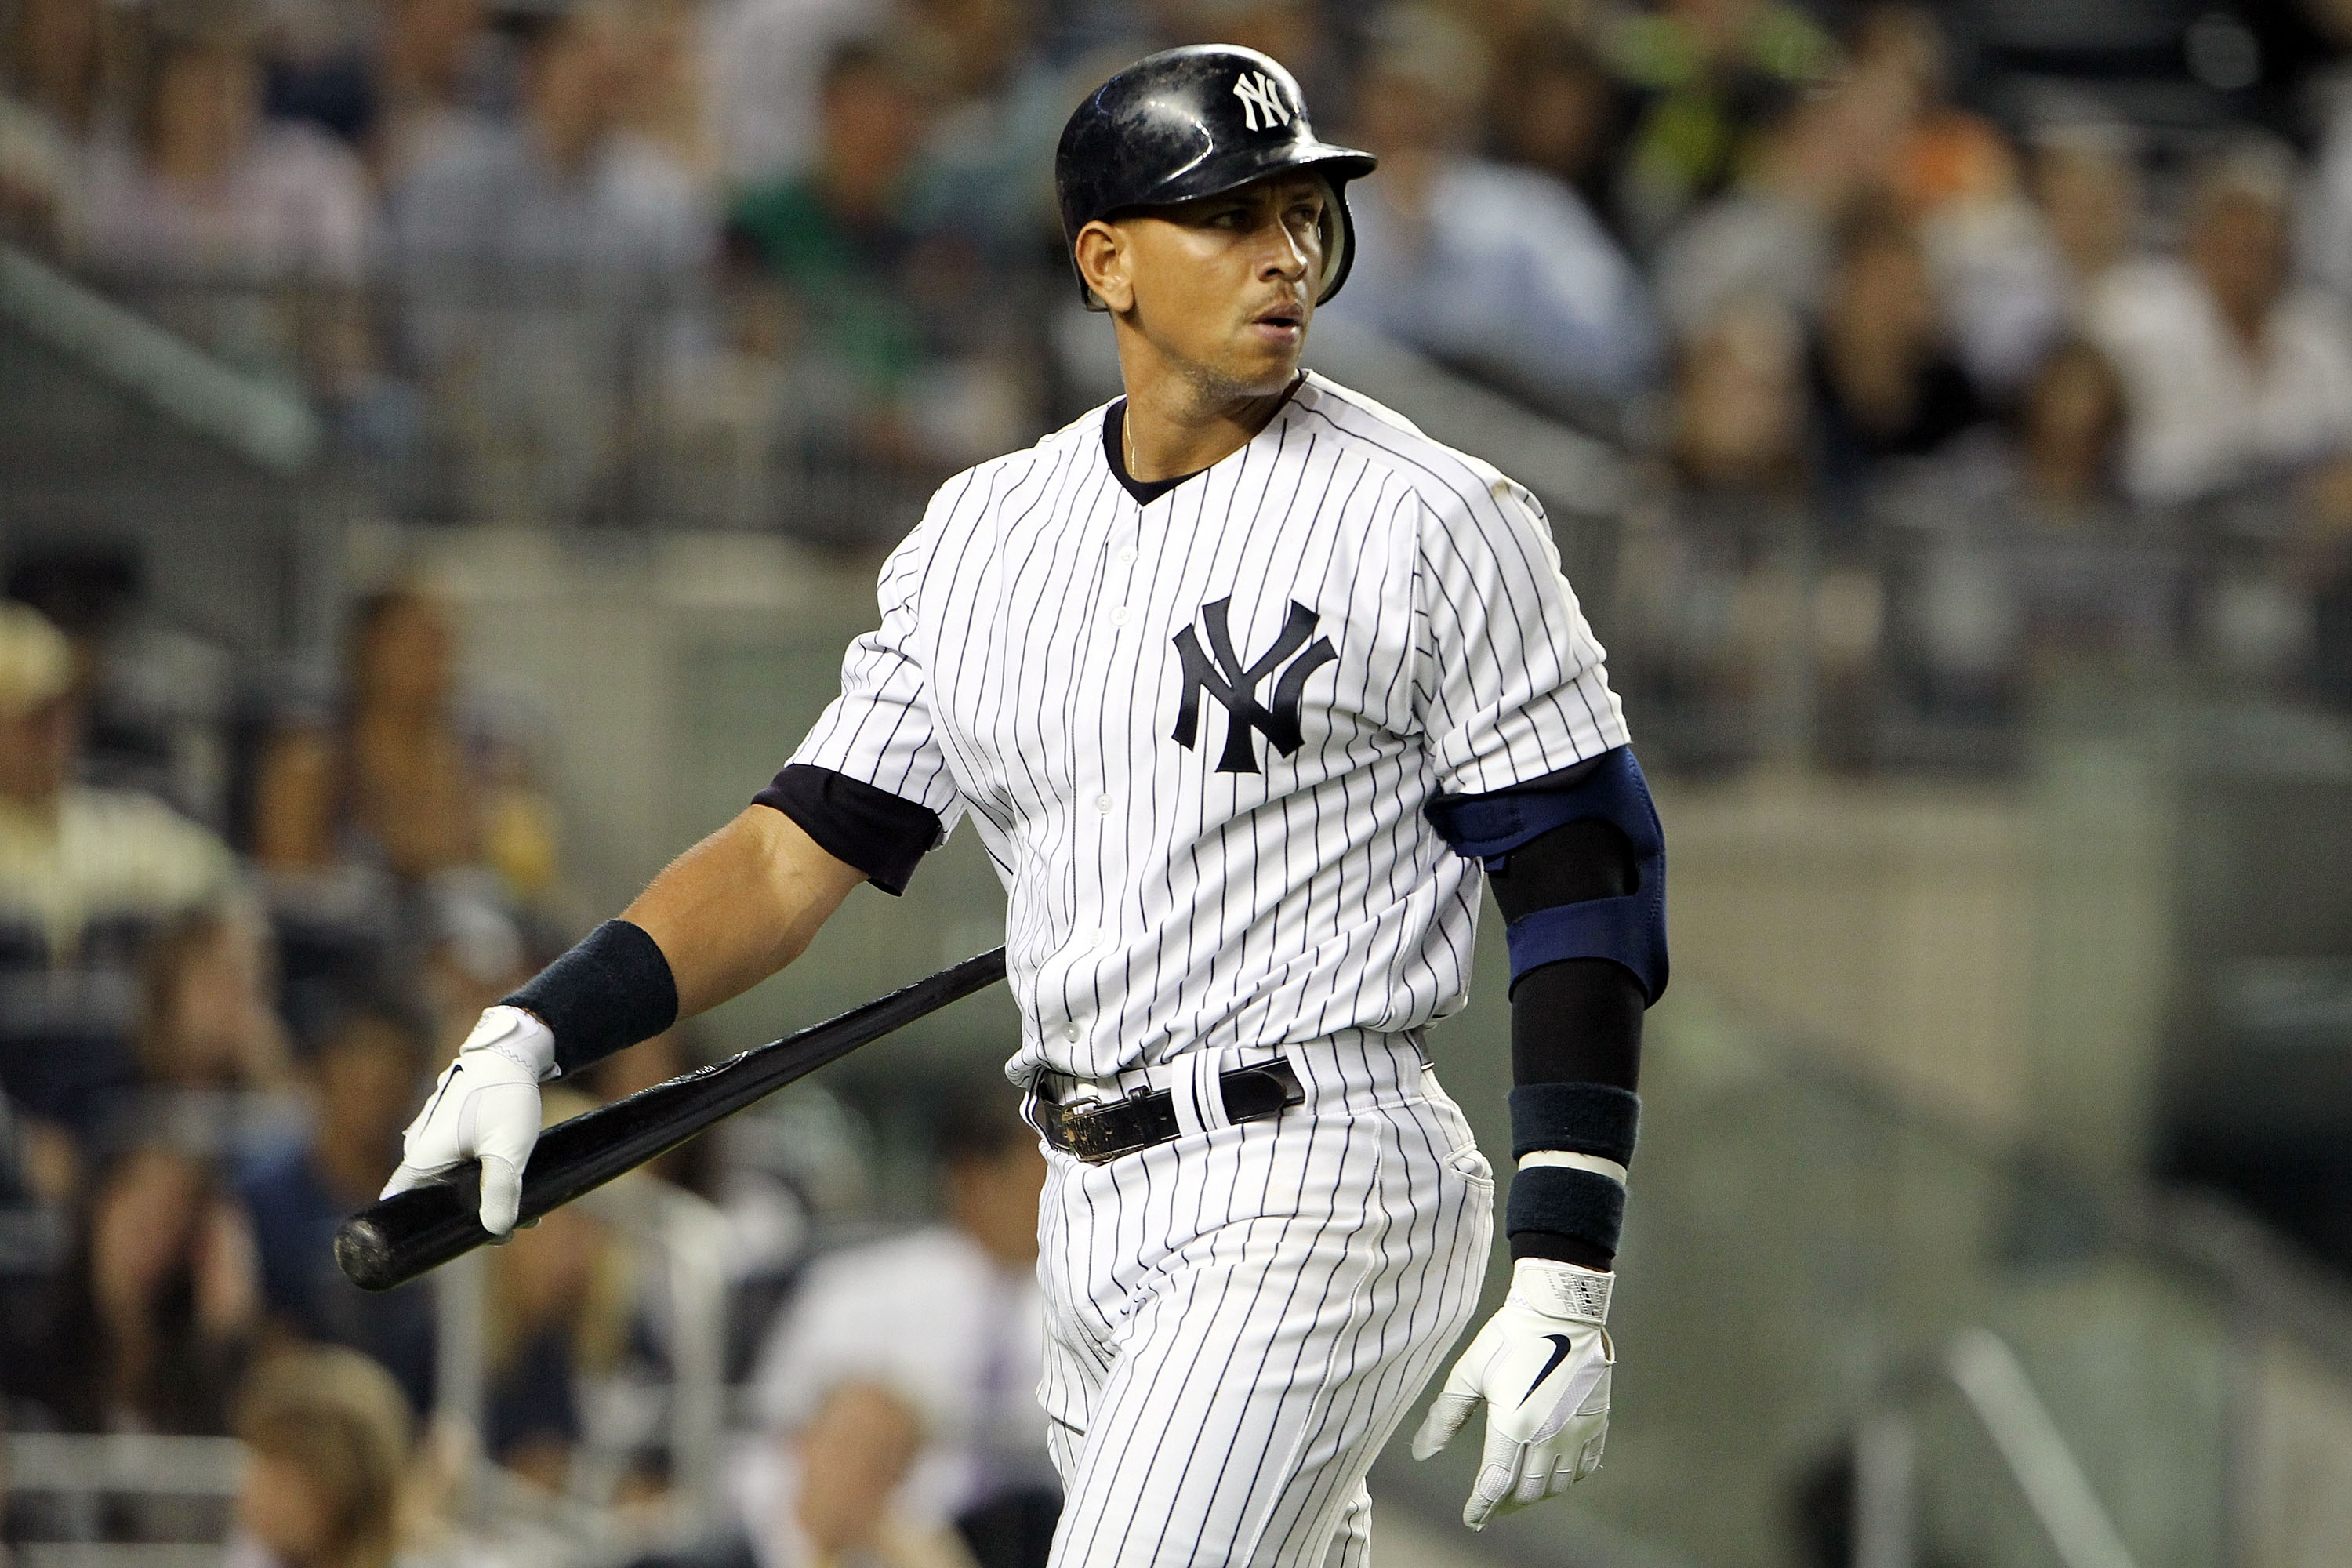 NEW YORK, NY - MAY 24:  Alex Rodriguez #13 of the New York Yankees looks after striking out against the Toronto Blue Jays at Yankee Stadium on May 24, 2011 in the Bronx borough of New York City.  (Photo by Michael Heiman/Getty Images)